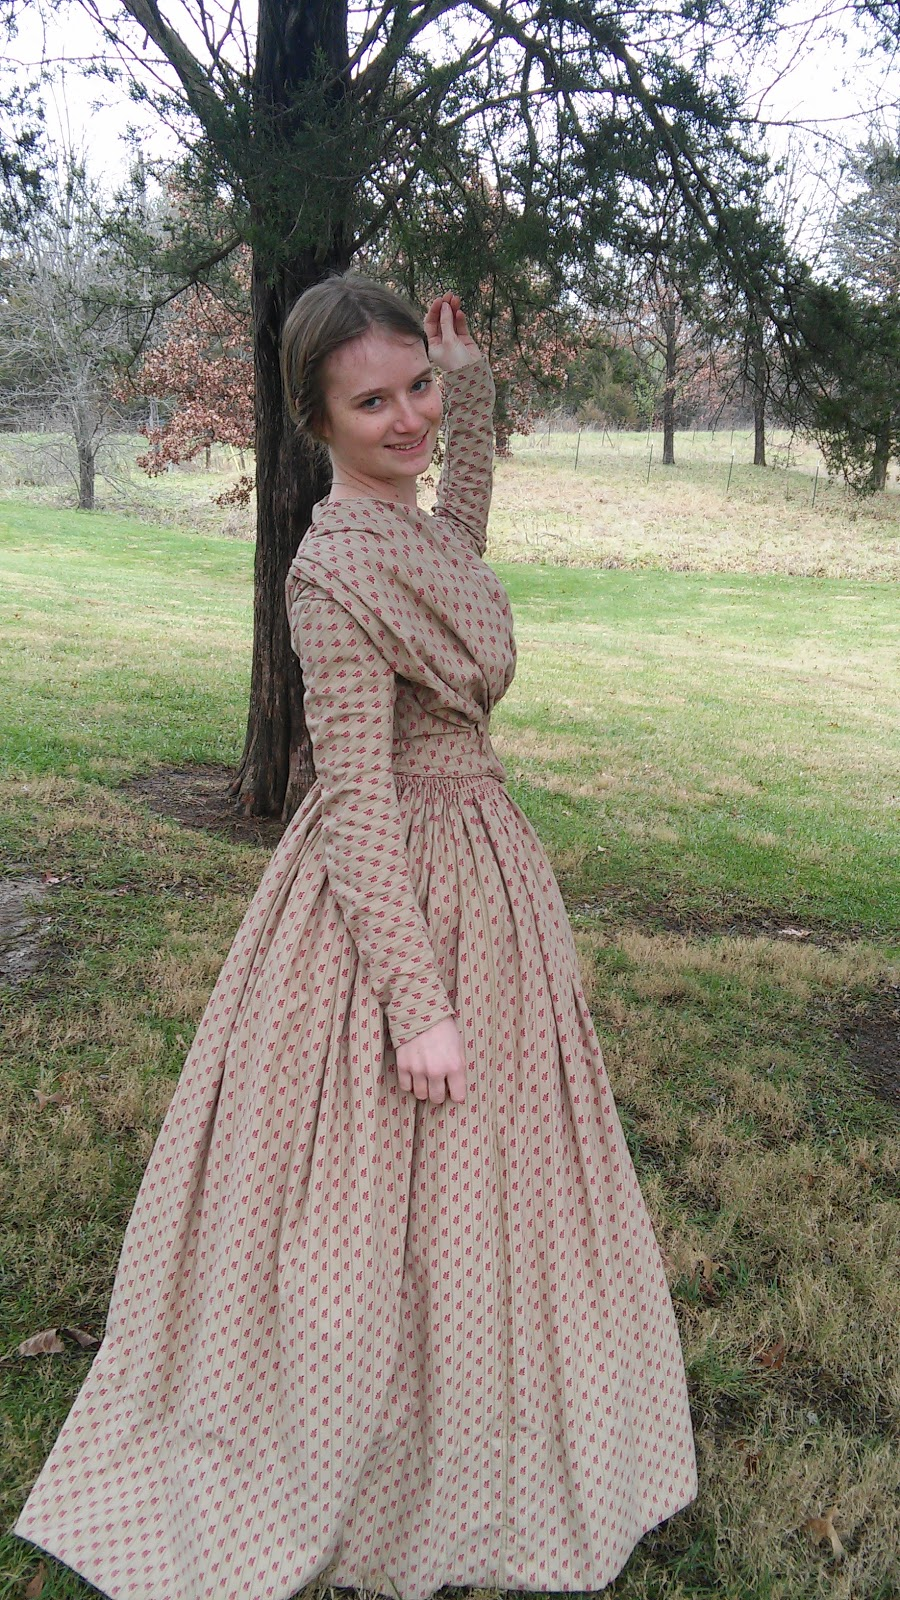 The Sewing Goatherd: The Completely Handsewn 1840's Dress